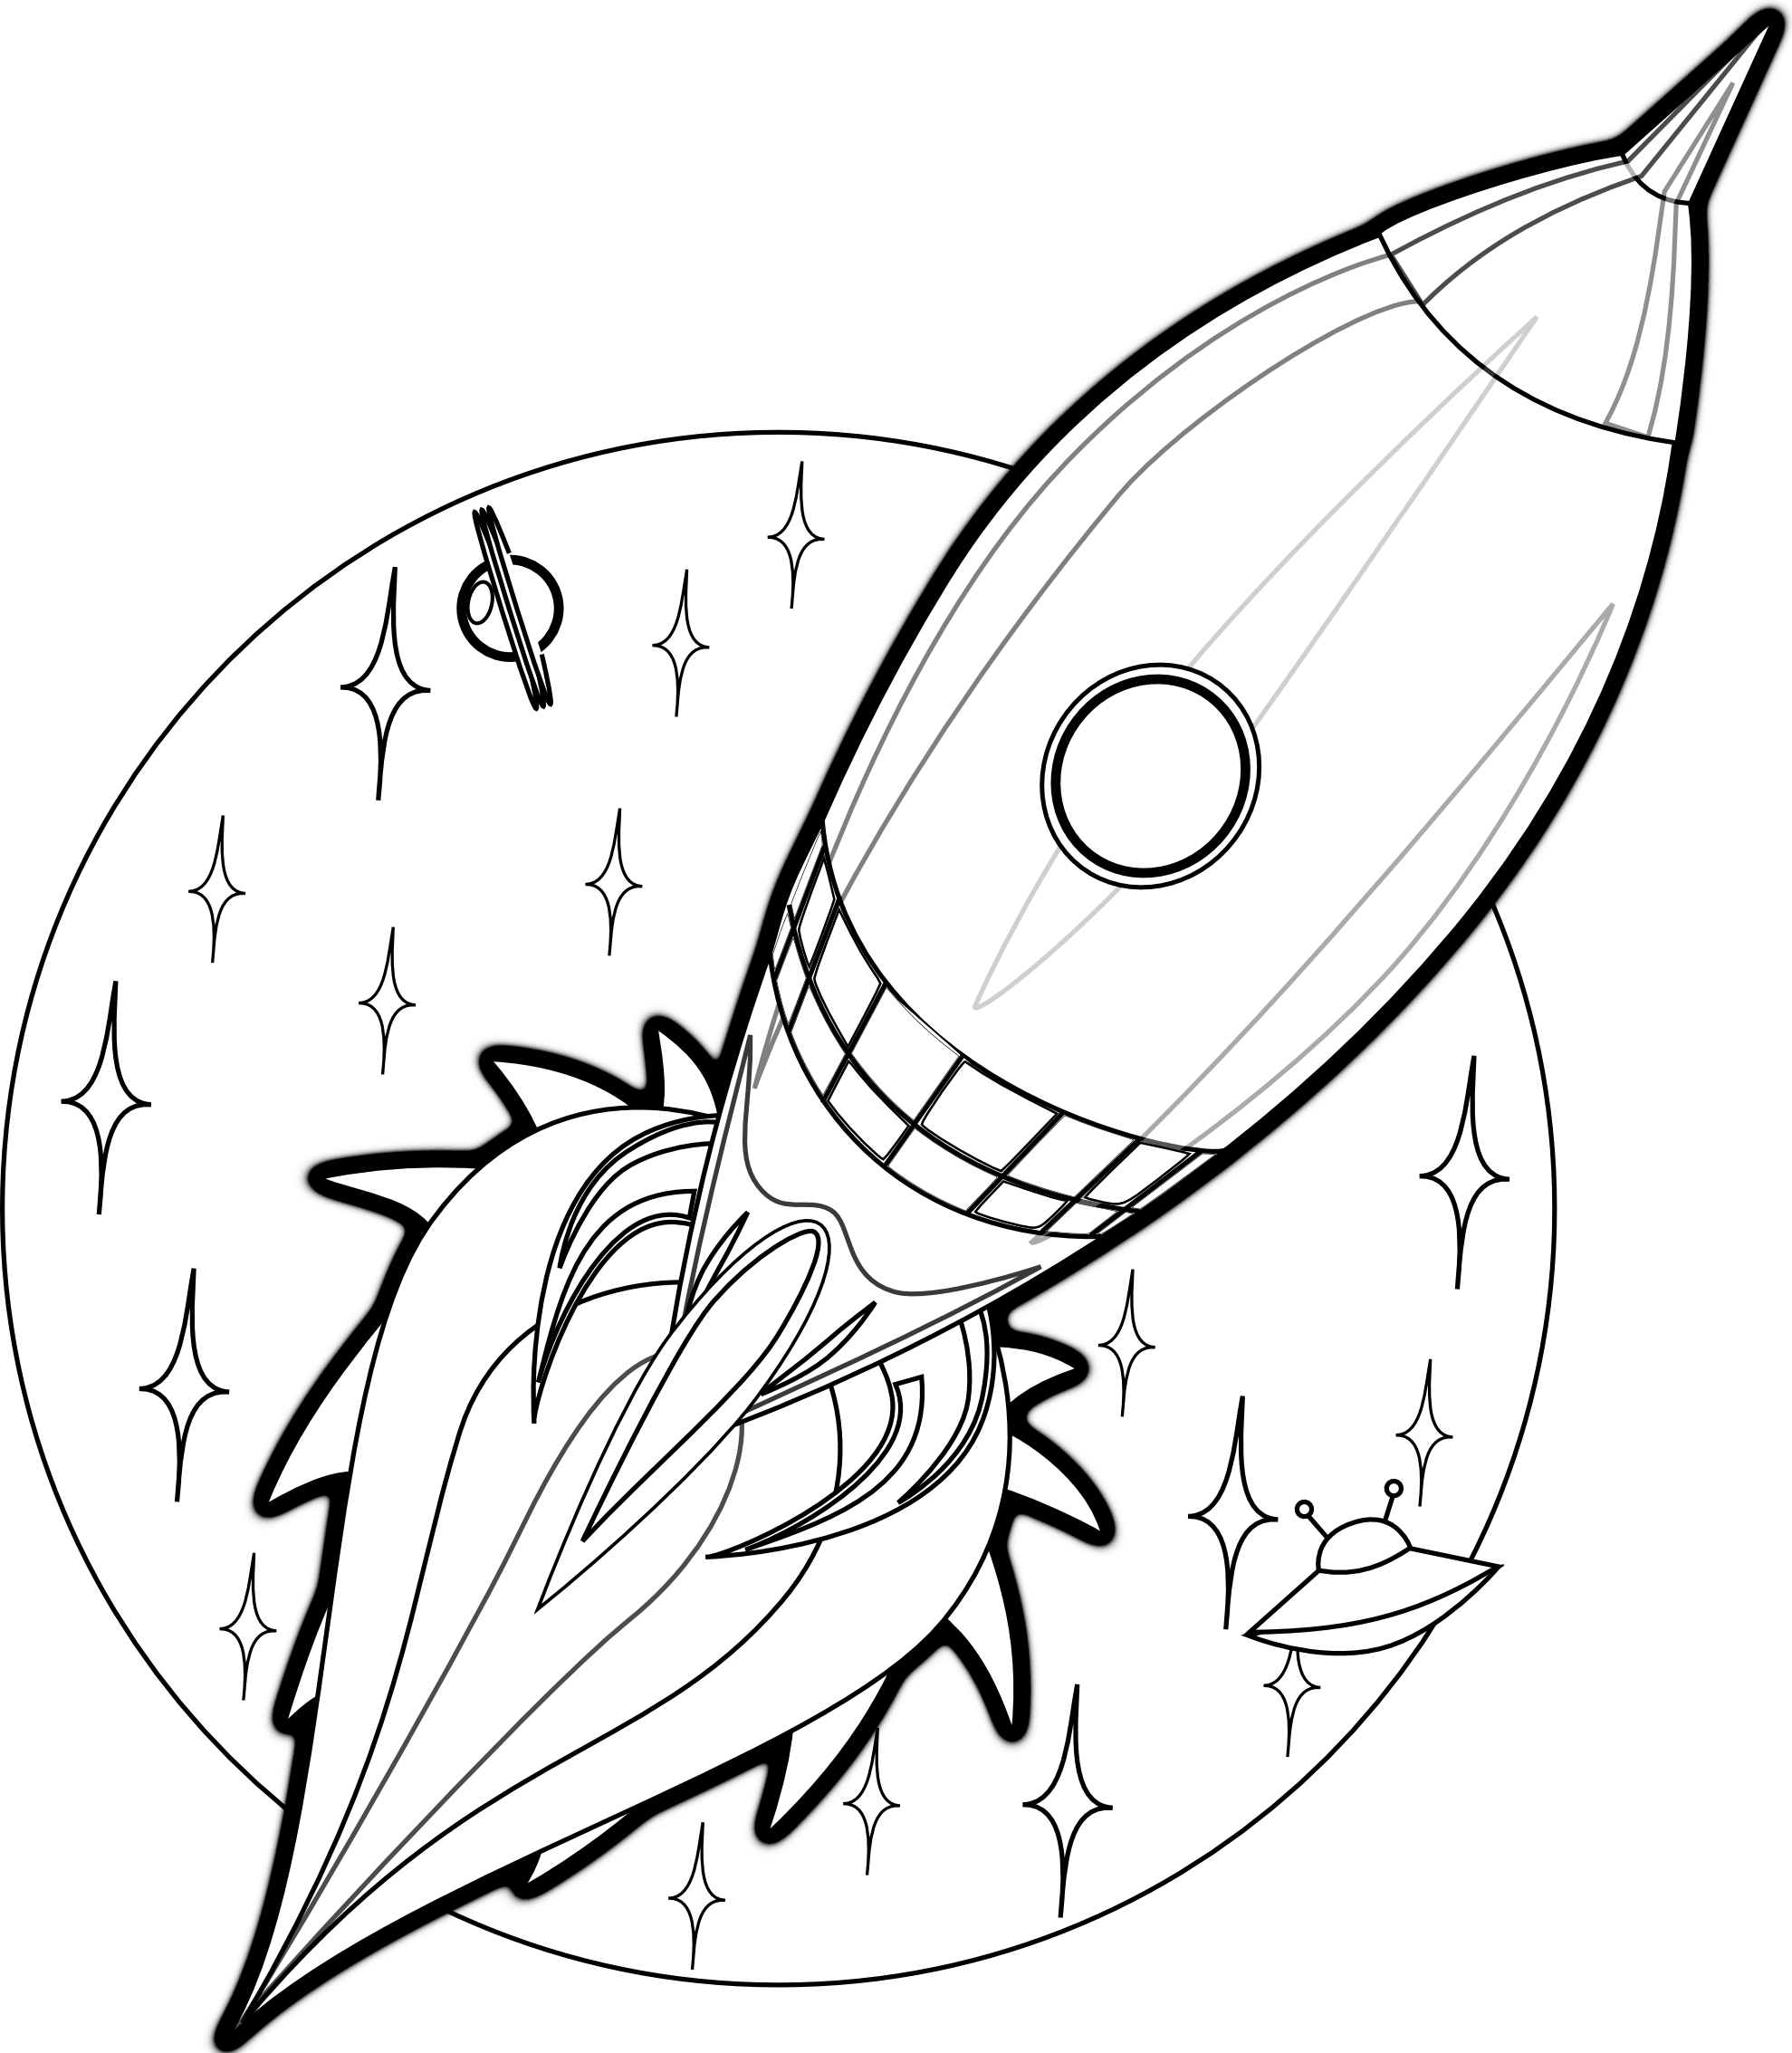 rocket coloring sheet rocket coloring pages to download and print for free coloring rocket sheet